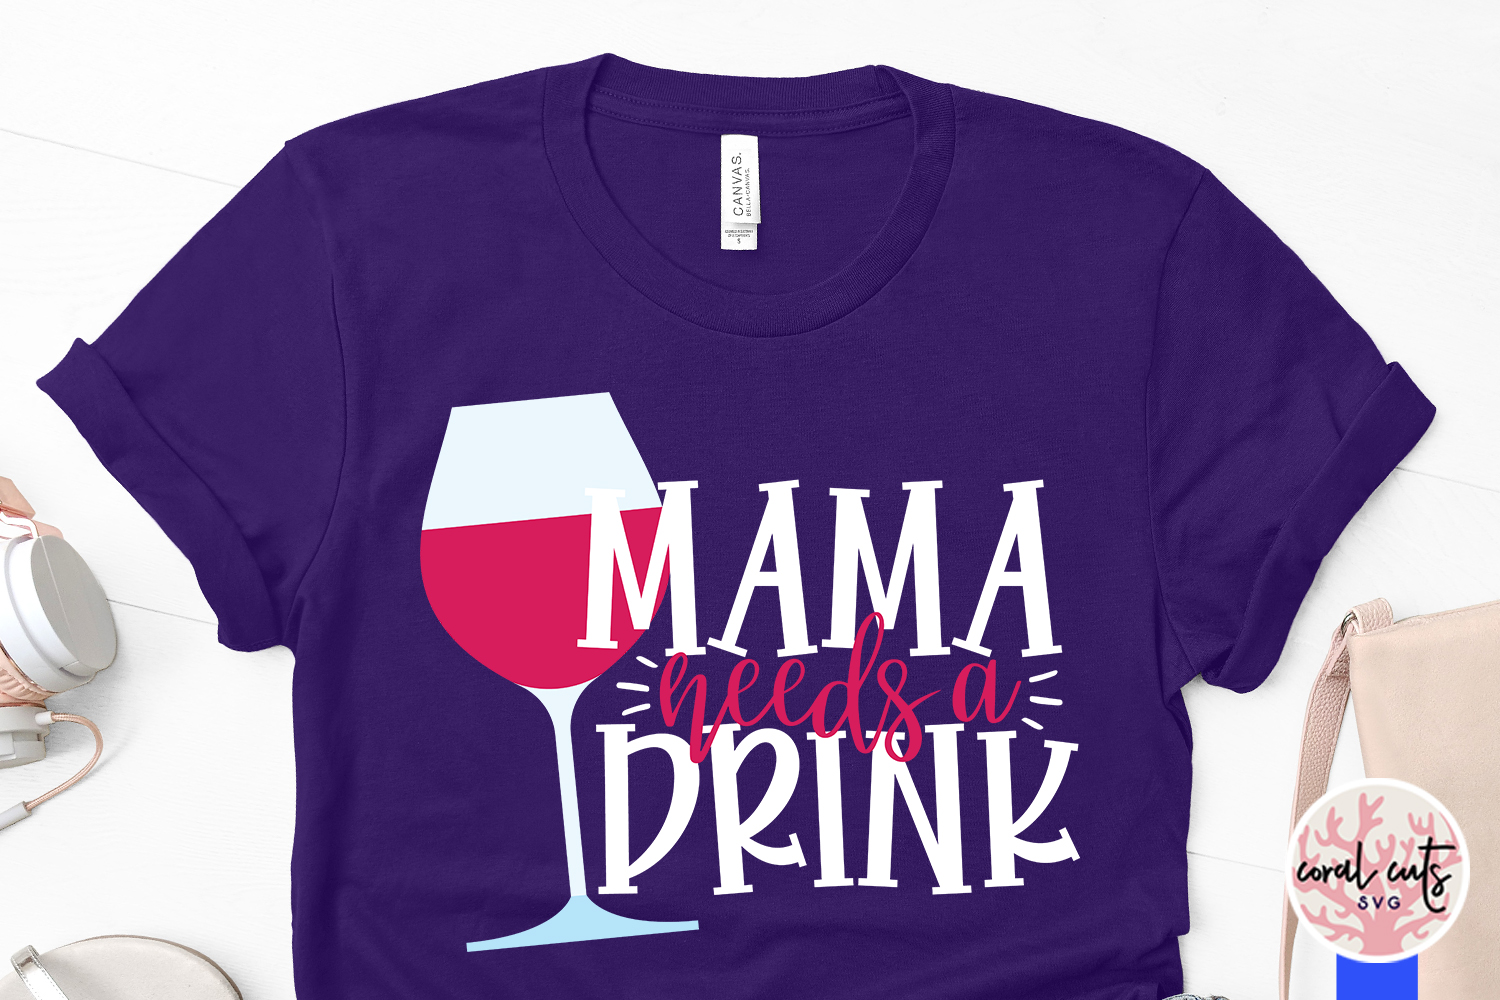 Mama needs a drink - Mother SVG EPS DXF PNG Cutting File example image 3